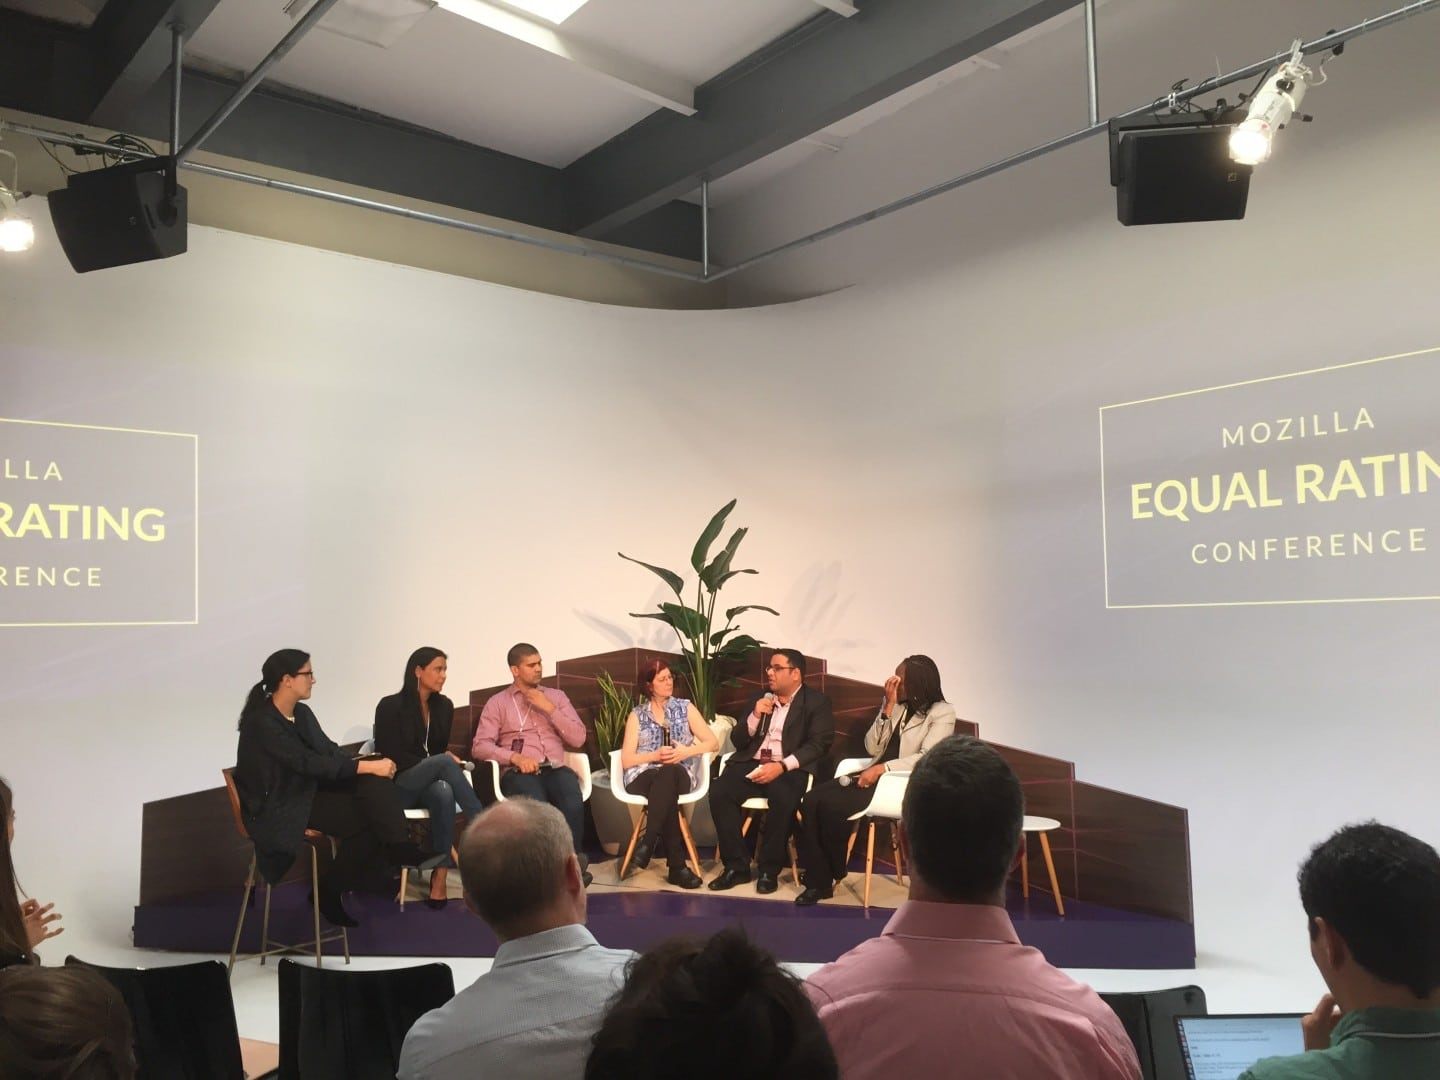 A Day Discussing Worldwide Internet Accessibility at the Mozilla Equal Rating Conference